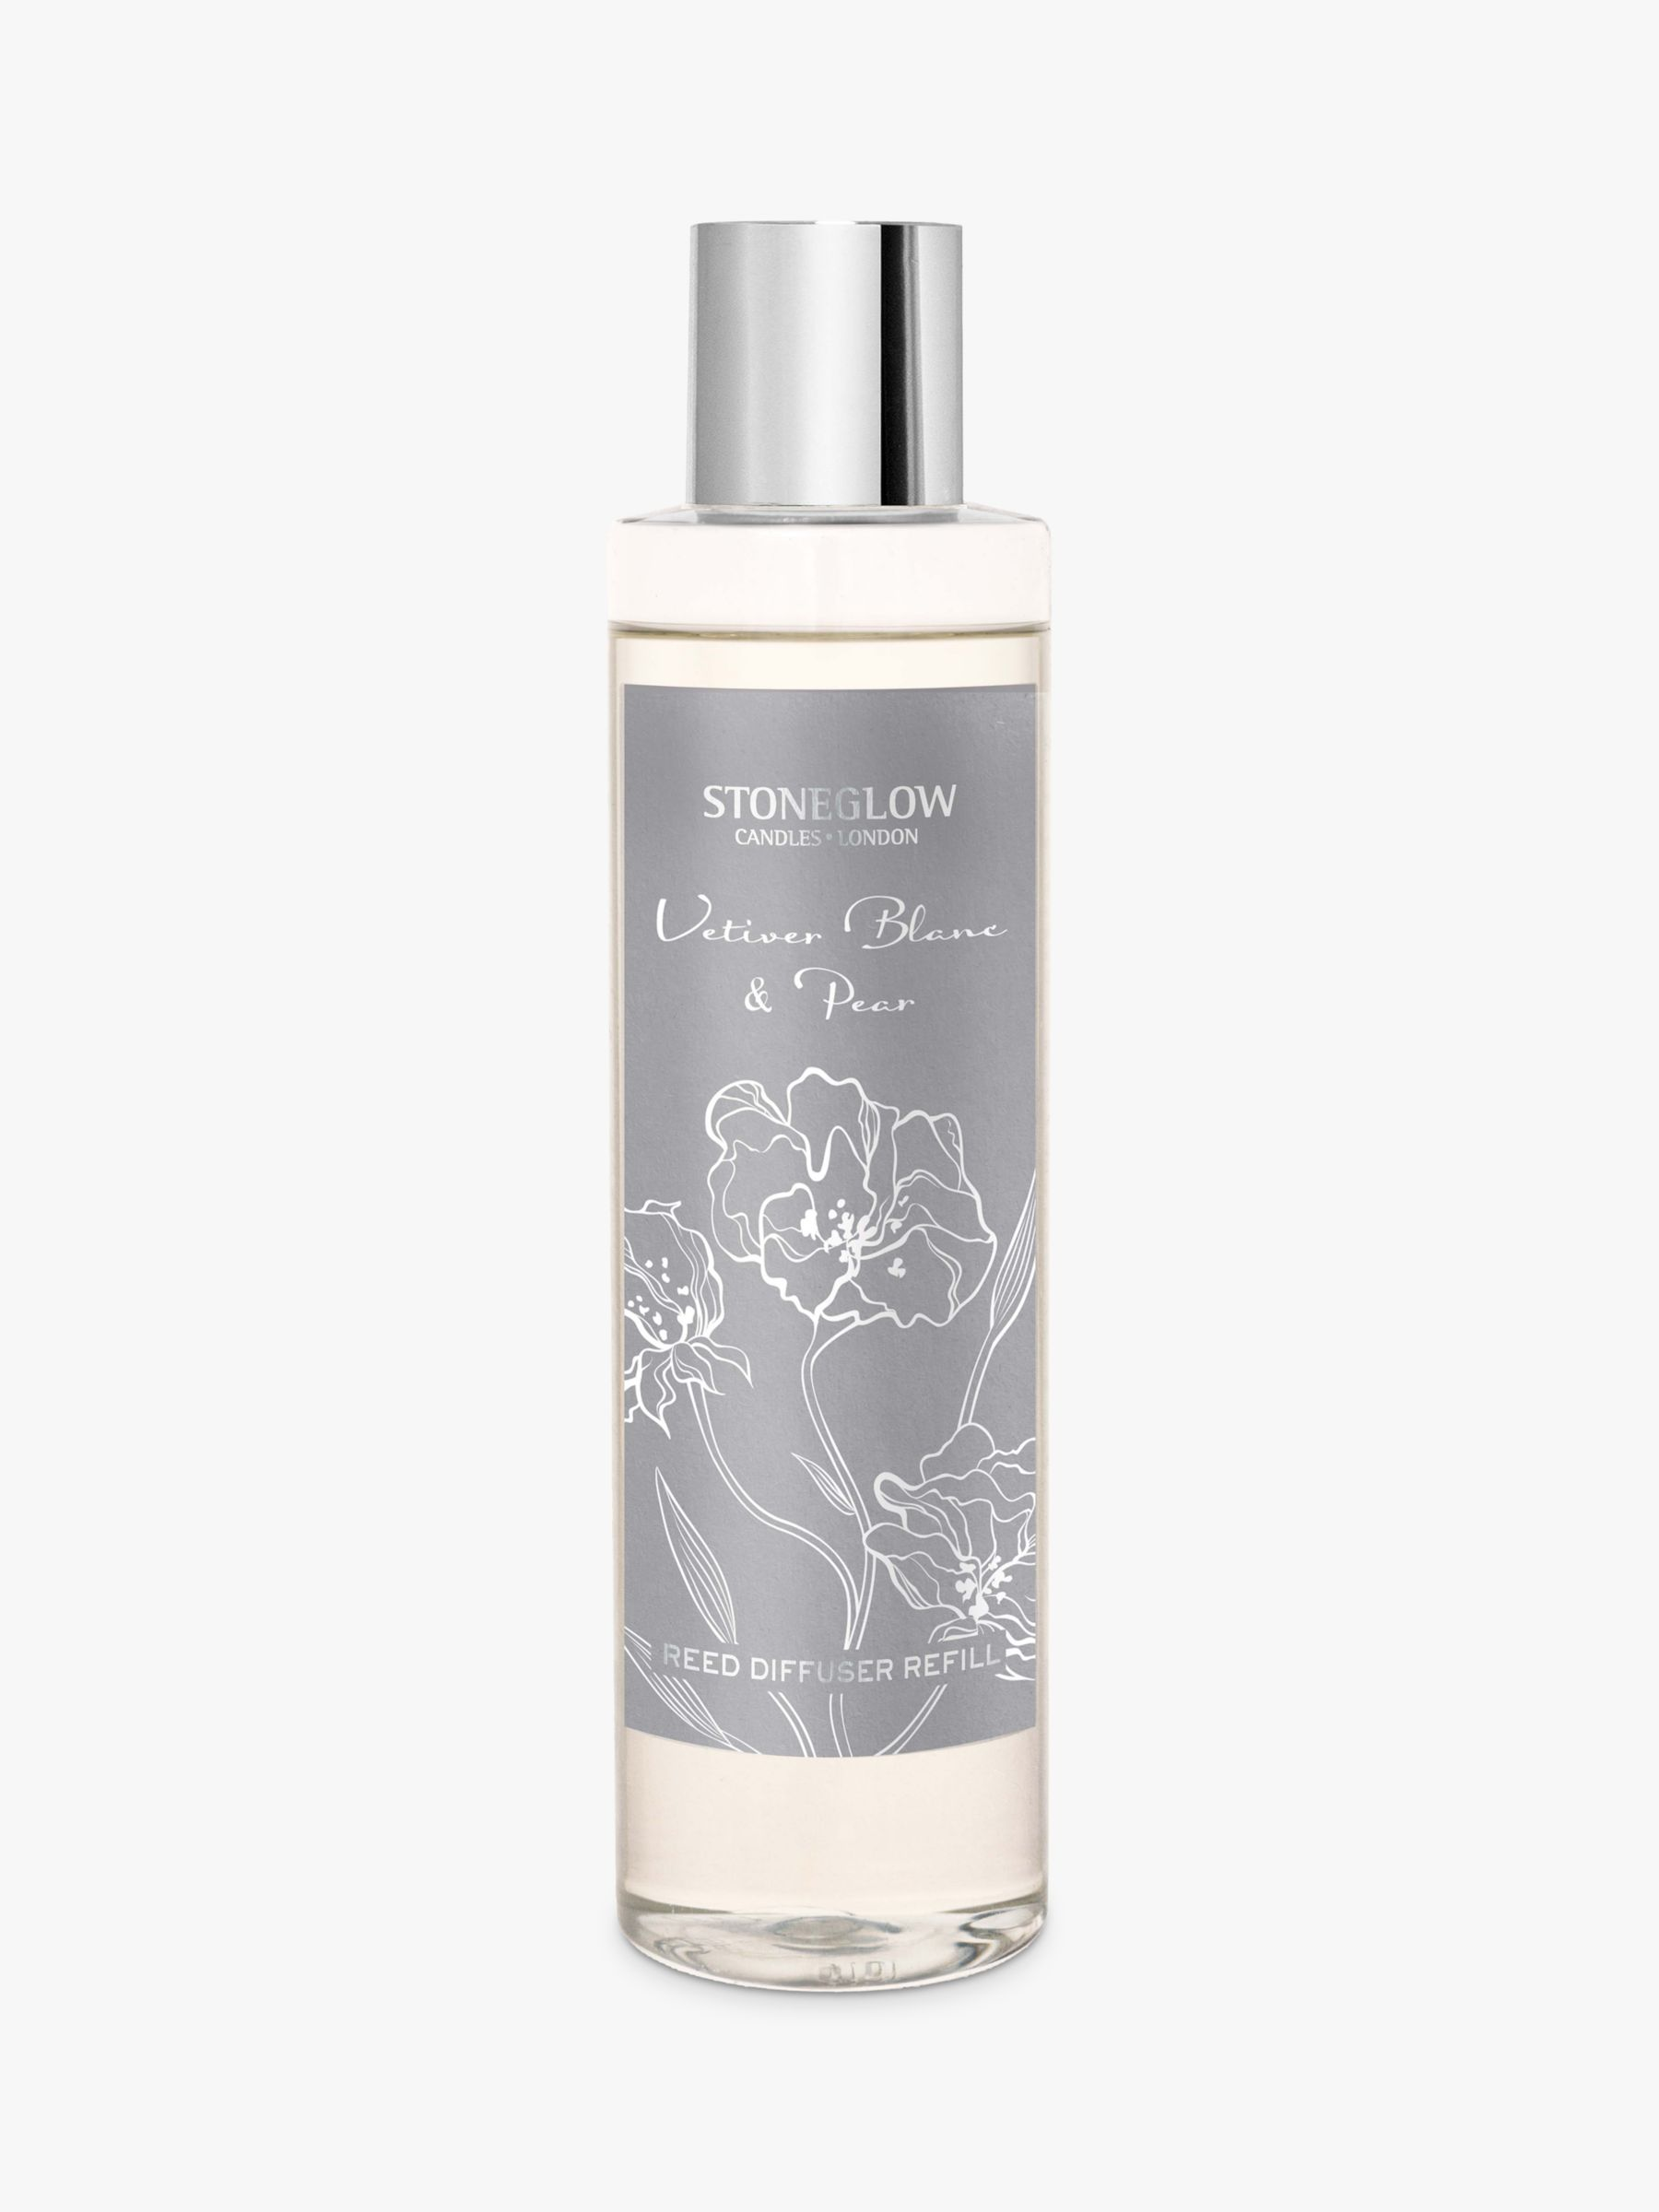 Stoneglow Stoneglow Day Flower Vetiver Blanc & Pear Diffuser Refill, 200ml